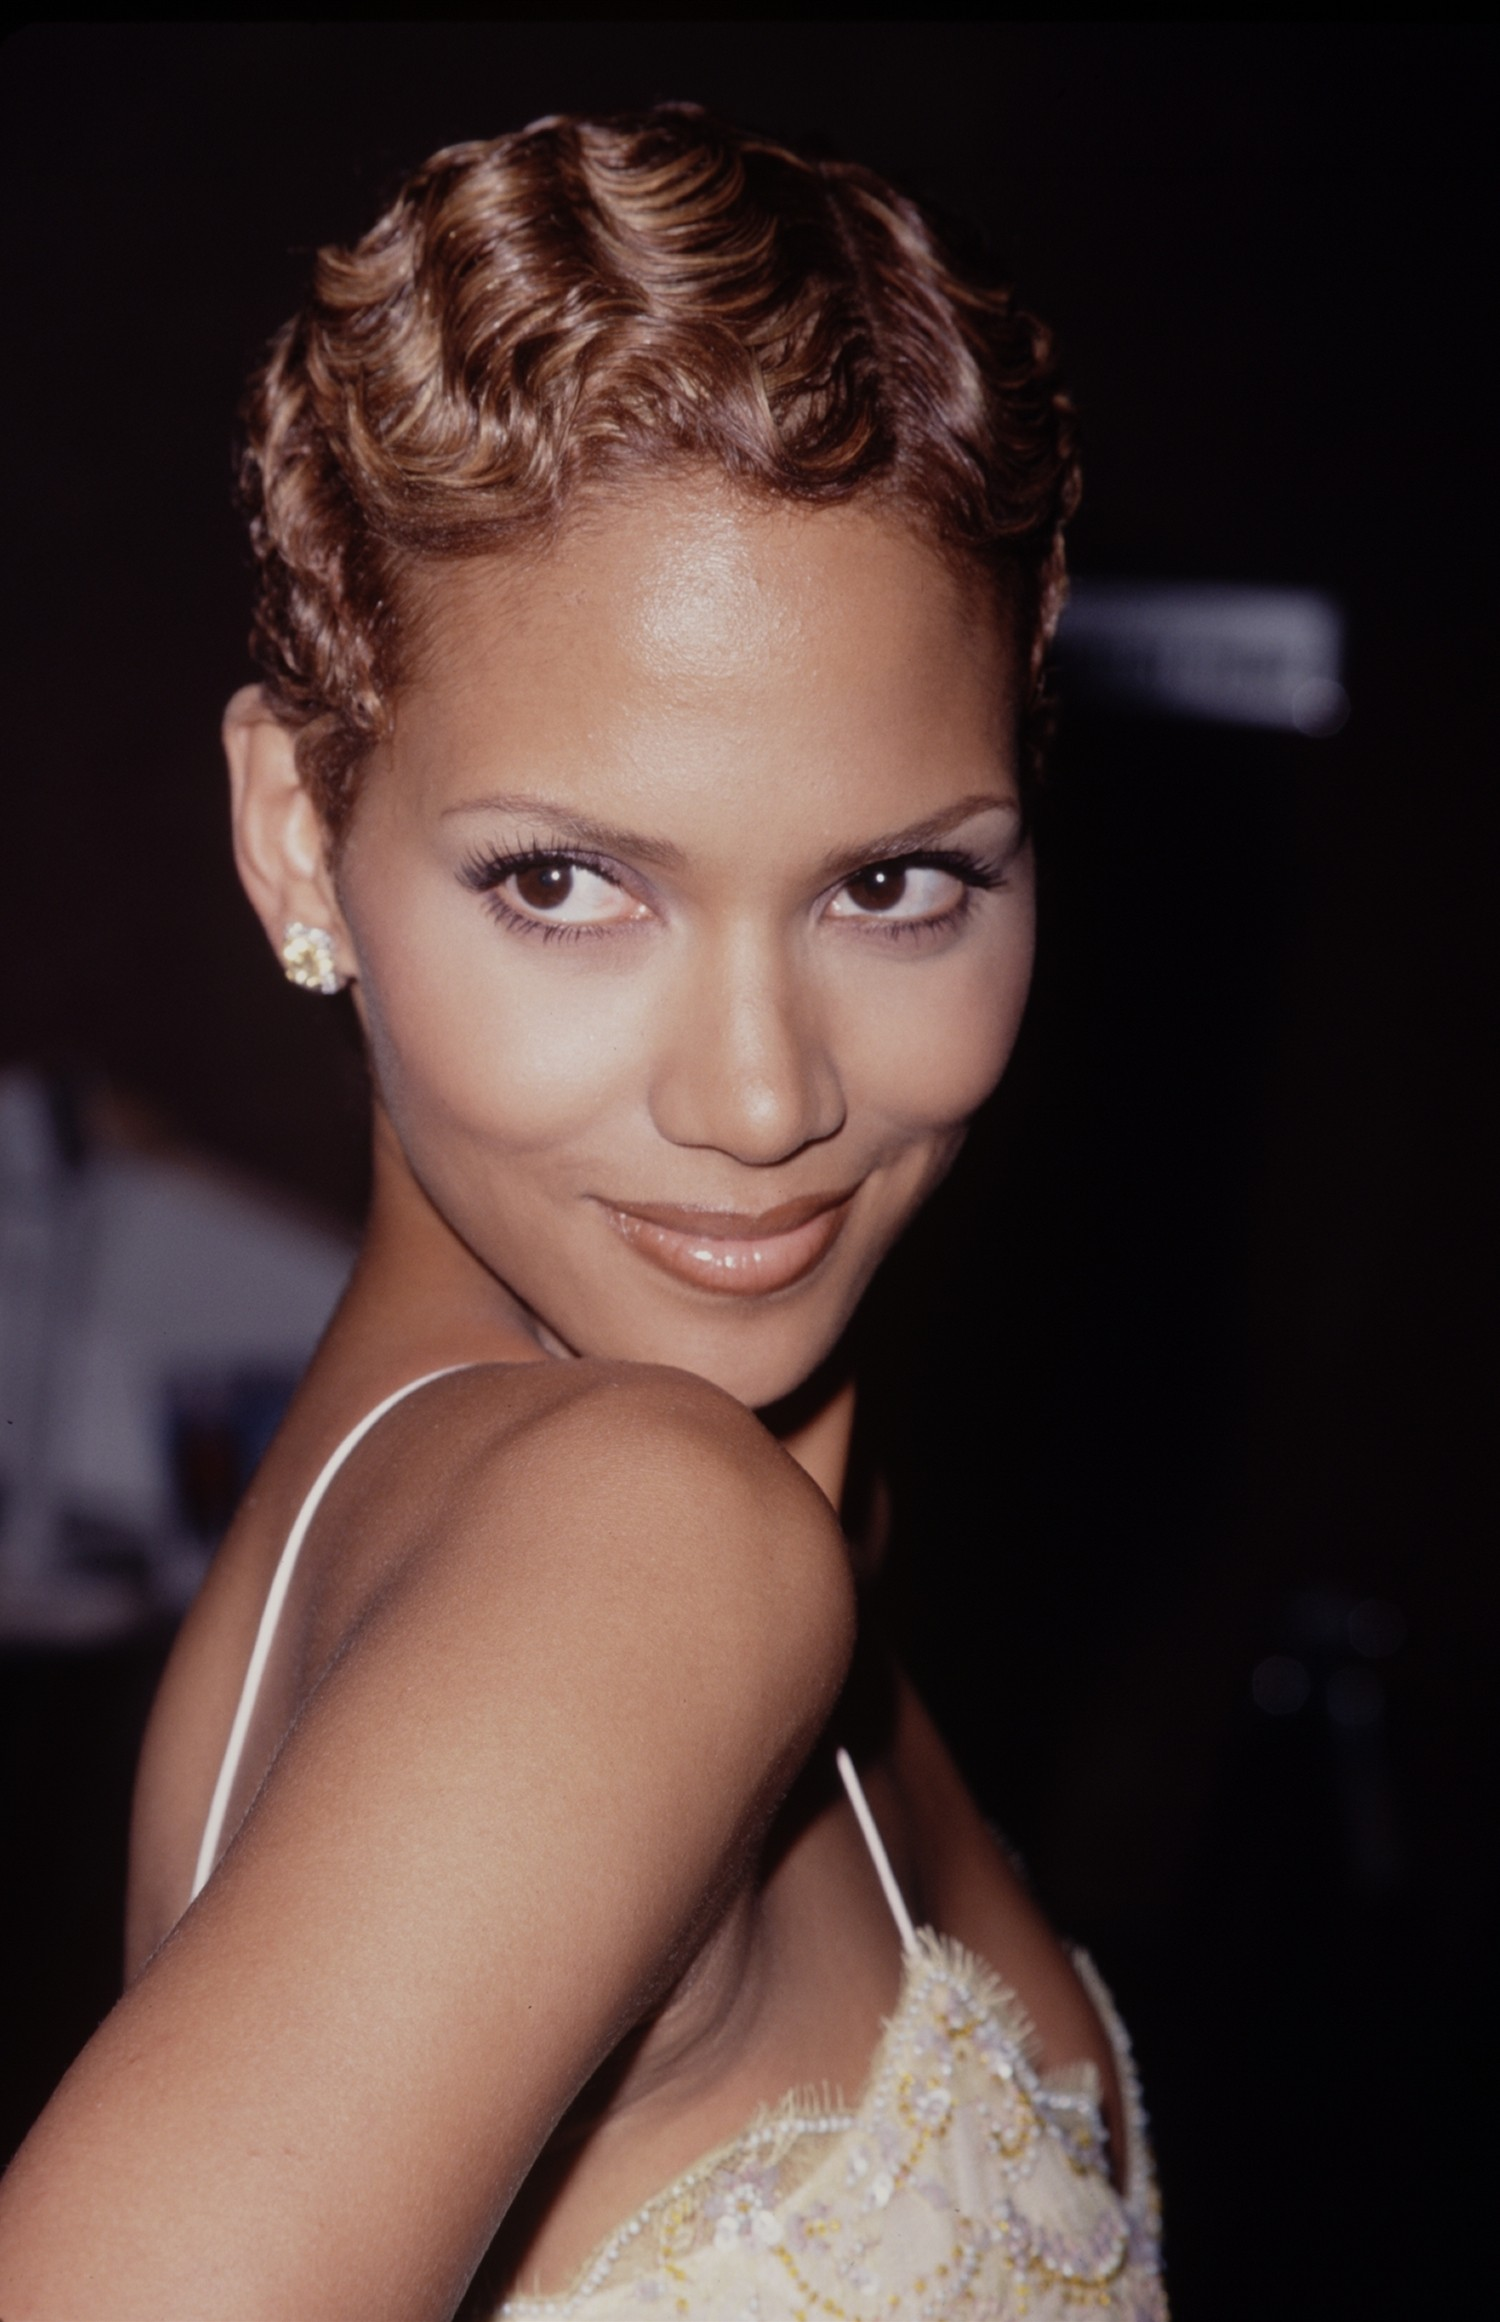 Halle Berry And Her Amazing Complexion PHOTO HuffPost